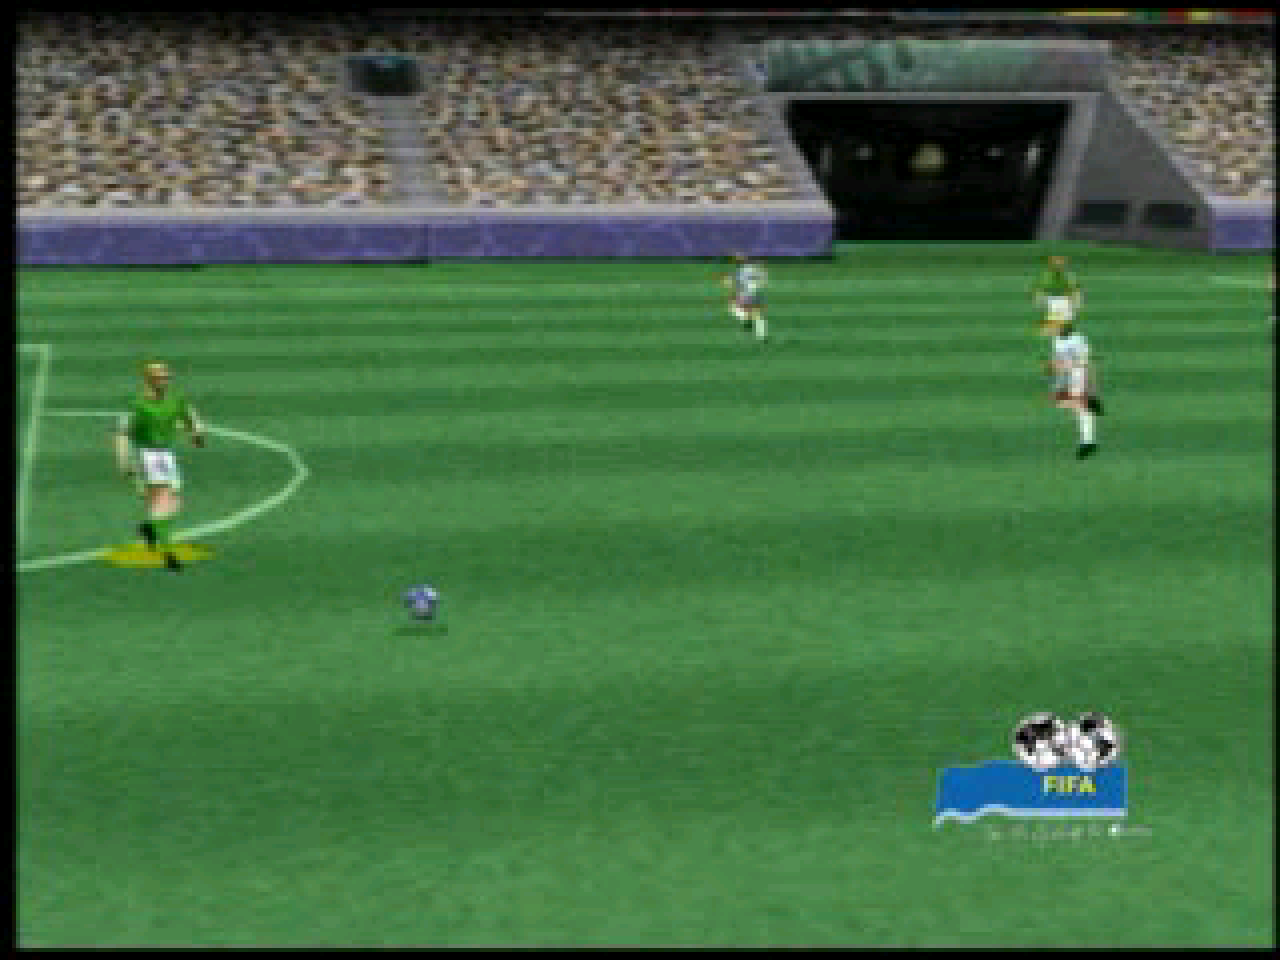 https://s3.eu-west-3.amazonaws.com/games.anthony-dessalles.com/FIFA 99 PS1 2020 - Screenshots/FIFA 99-201123-184701.png